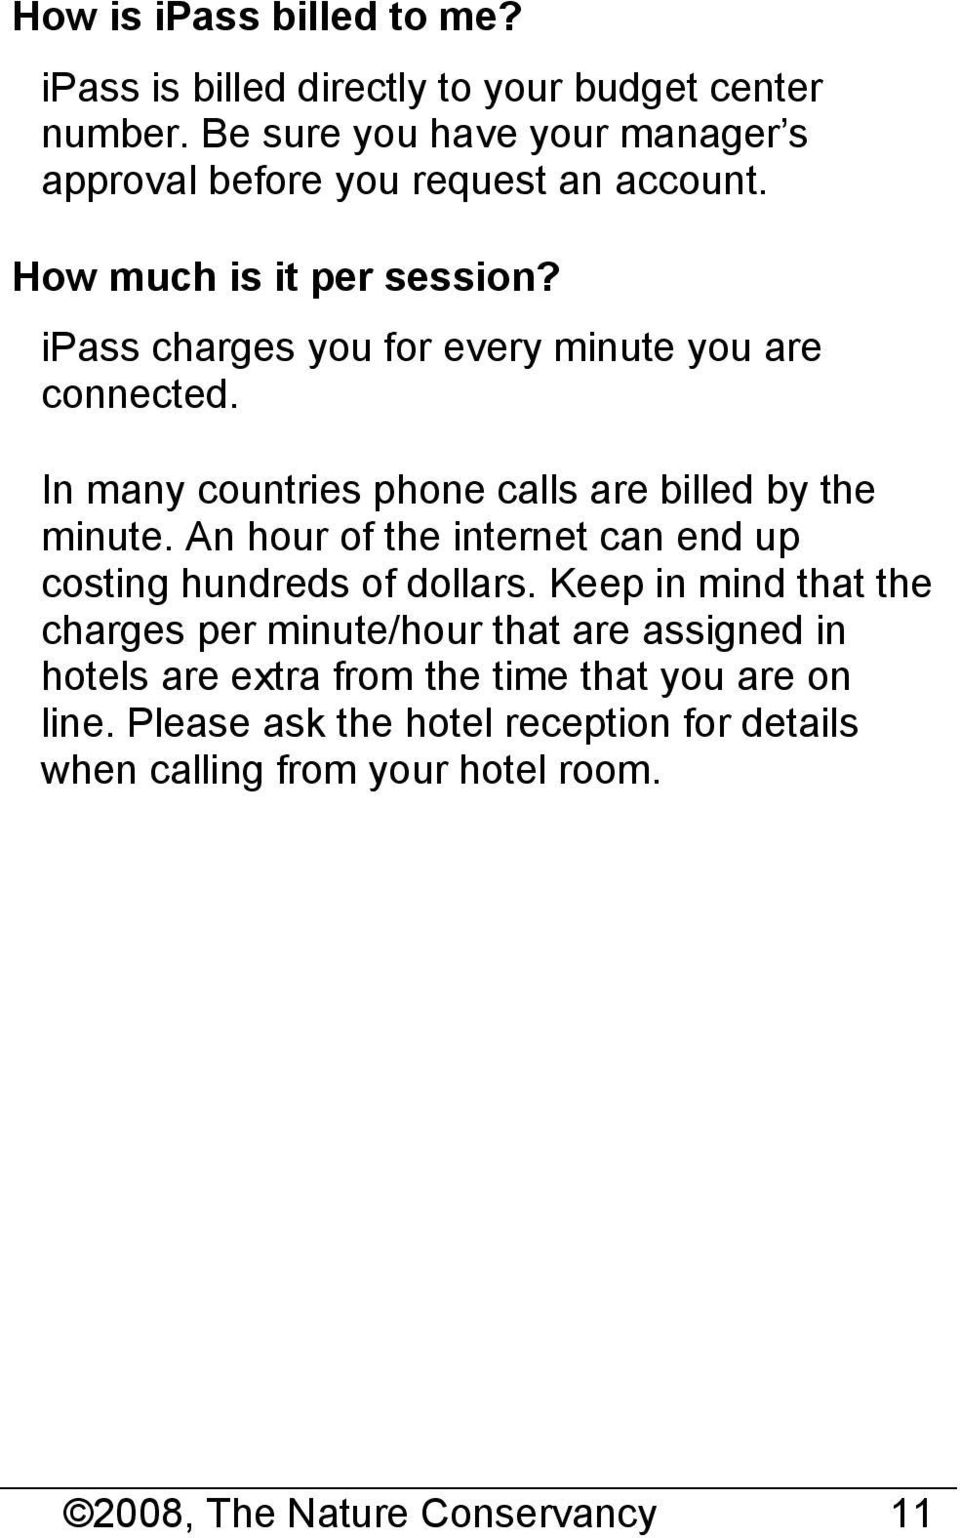 ipass charges you for every minute you are connected. In many countries phone calls are billed by the minute.